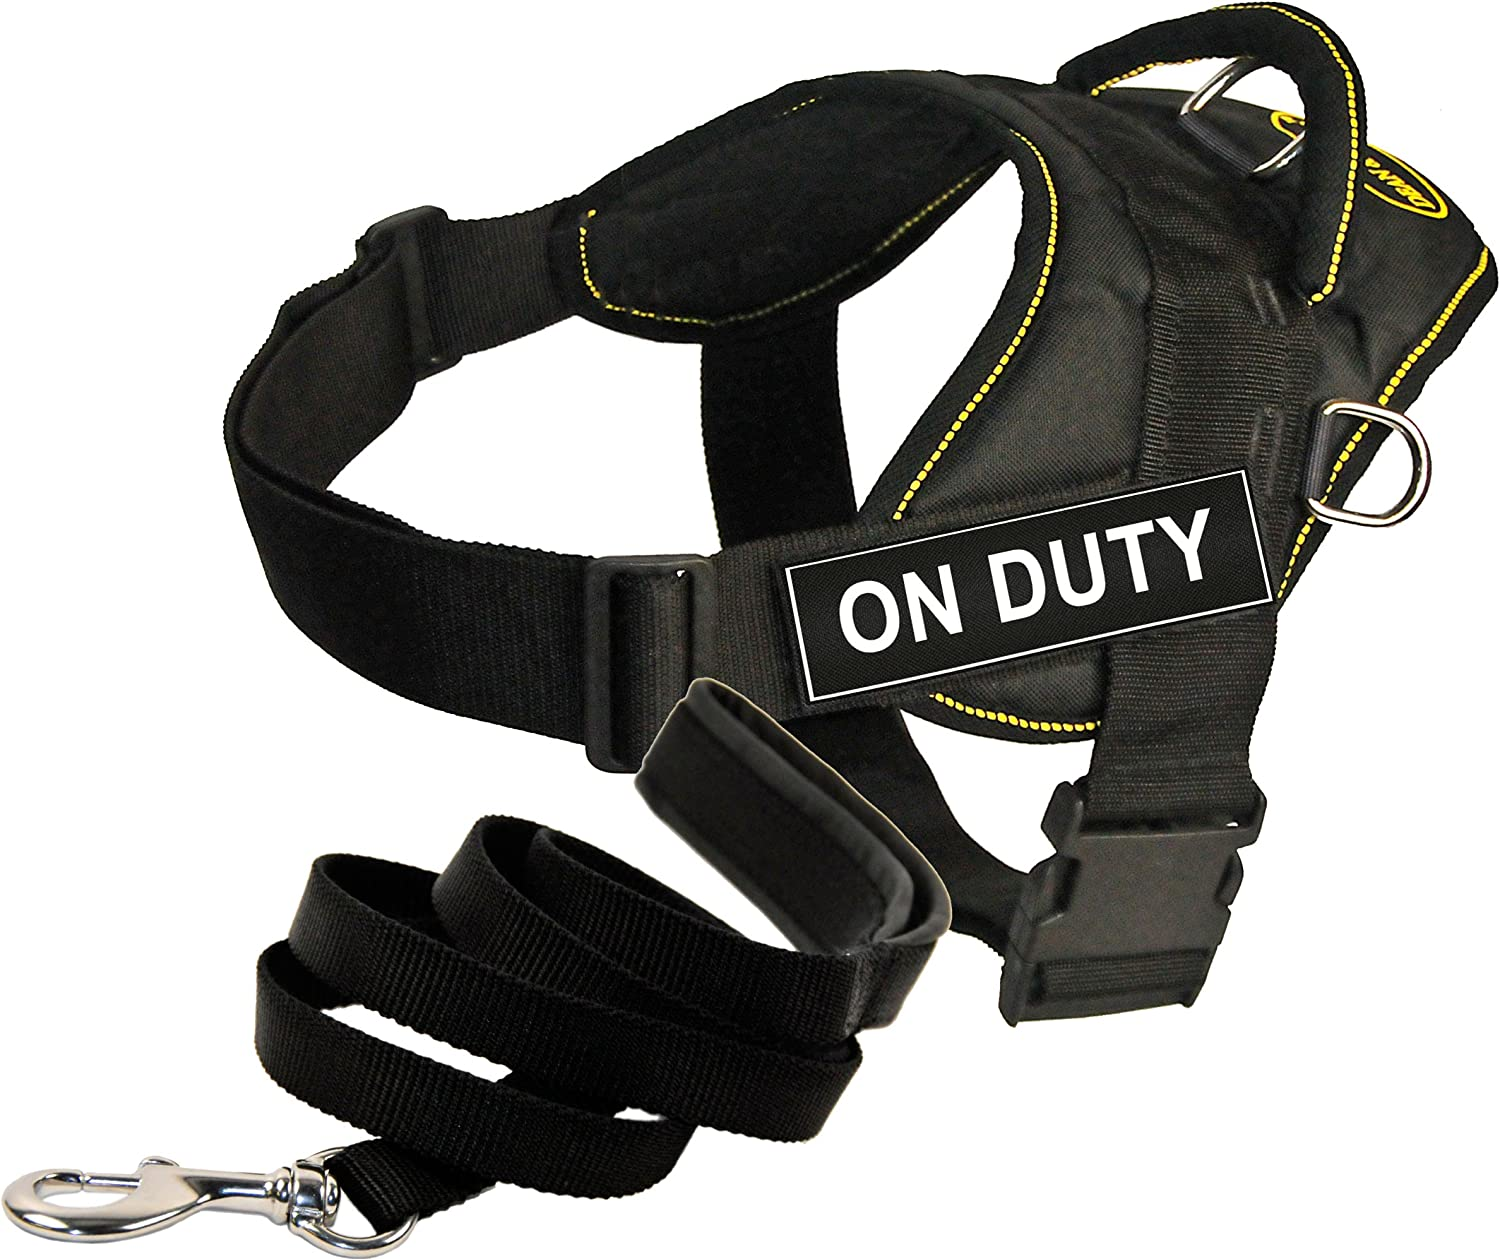 Dean and Tyler Bundle  One DT Fun Works  Harness, On Duty, Yellow Trim, Large (32   42 ) + One Padded Puppy  Leash, 6 FT Stainless Snap  Black